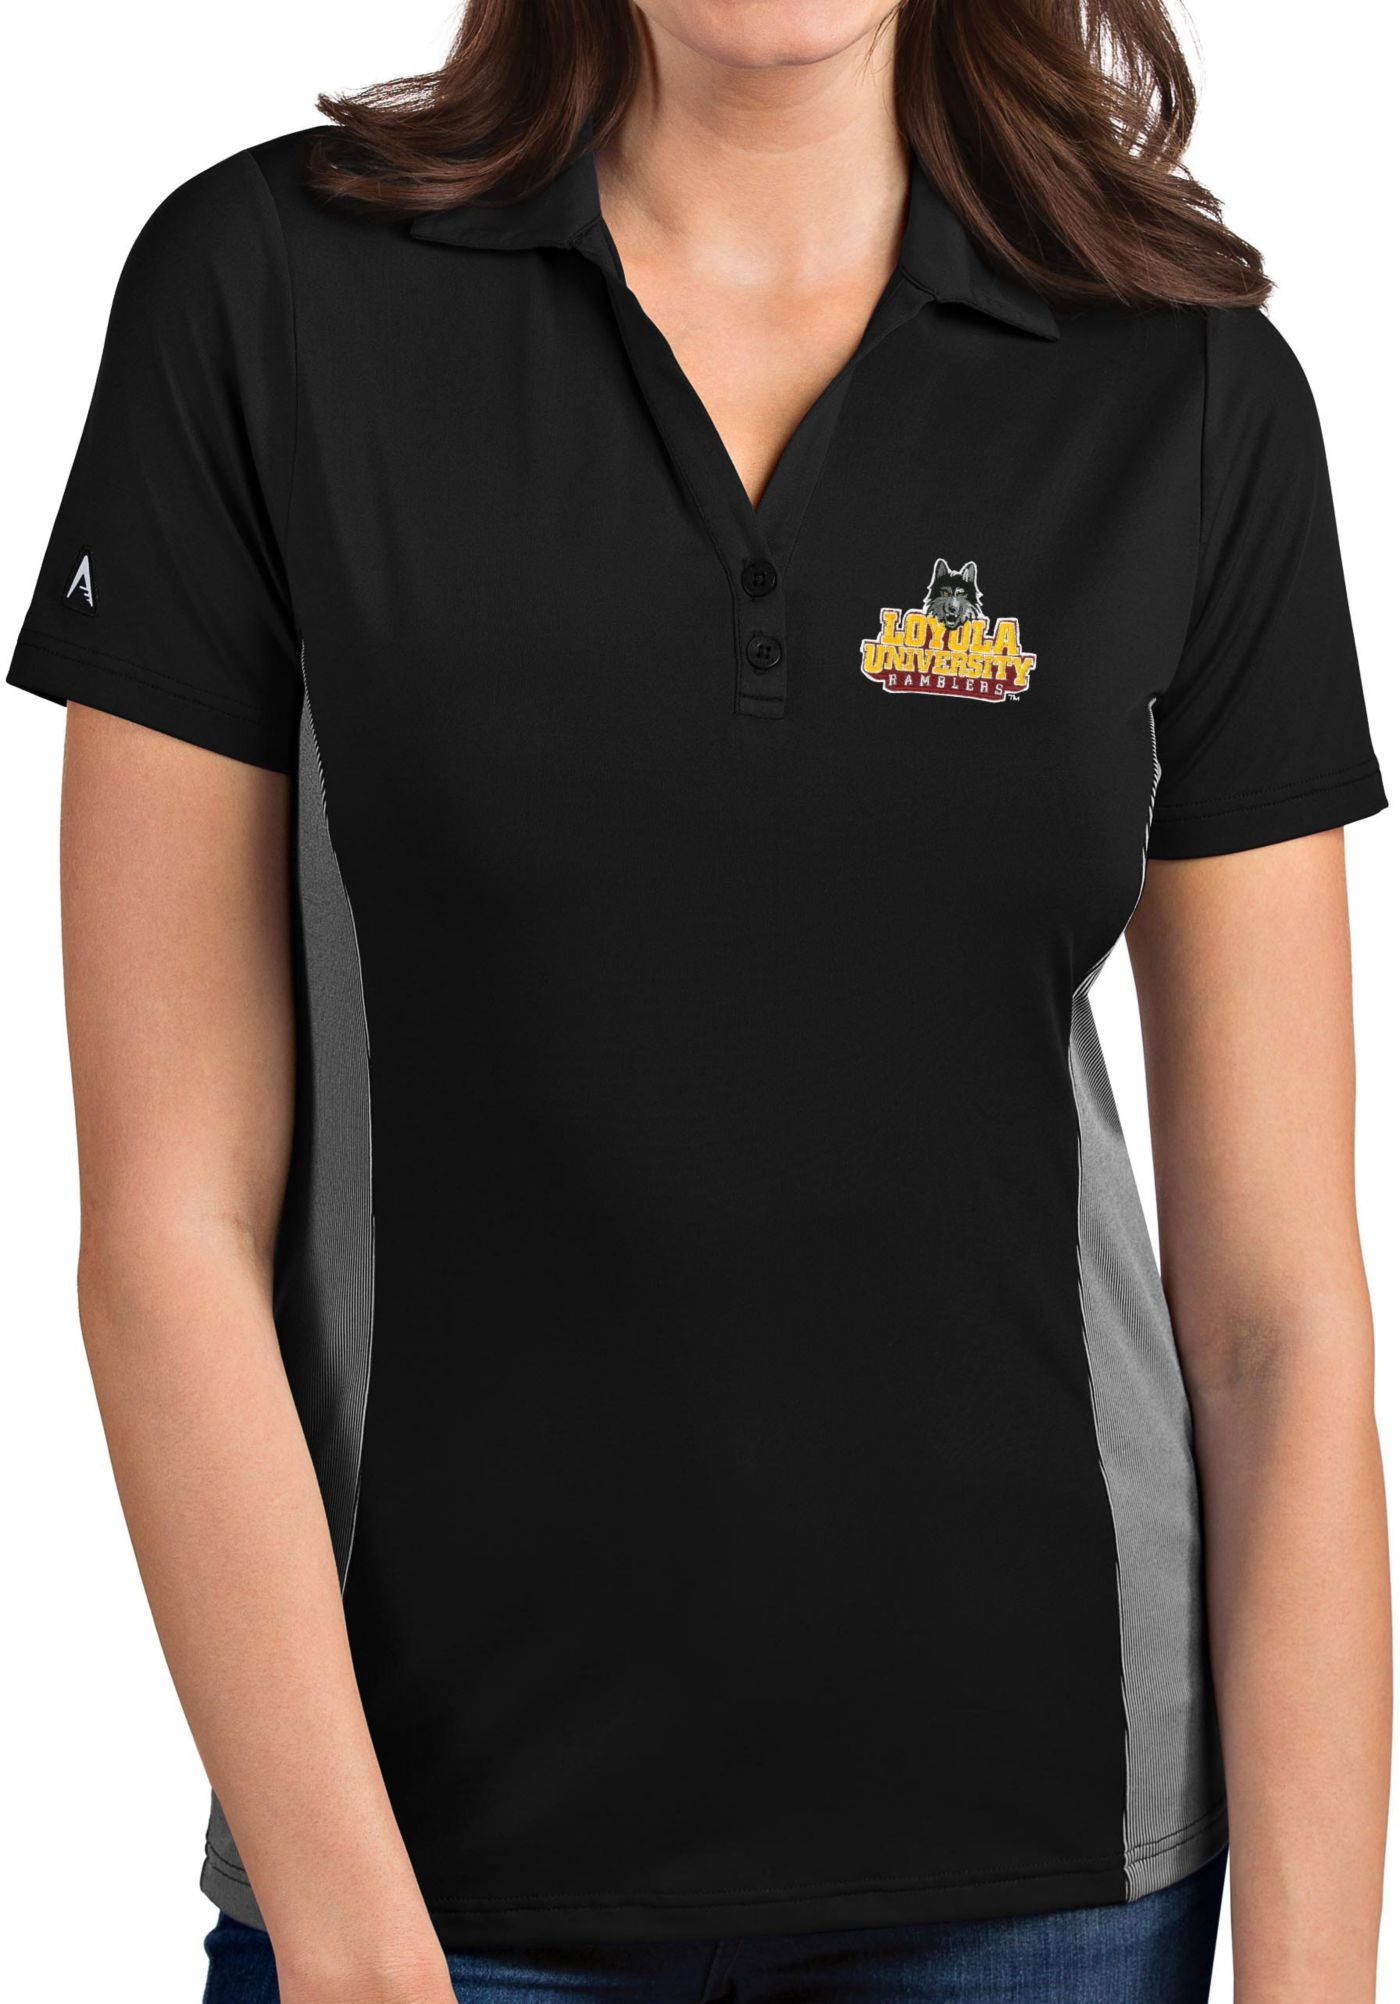 Antigua Women's Loyola - Chicago Ramblers Venture Black Polo